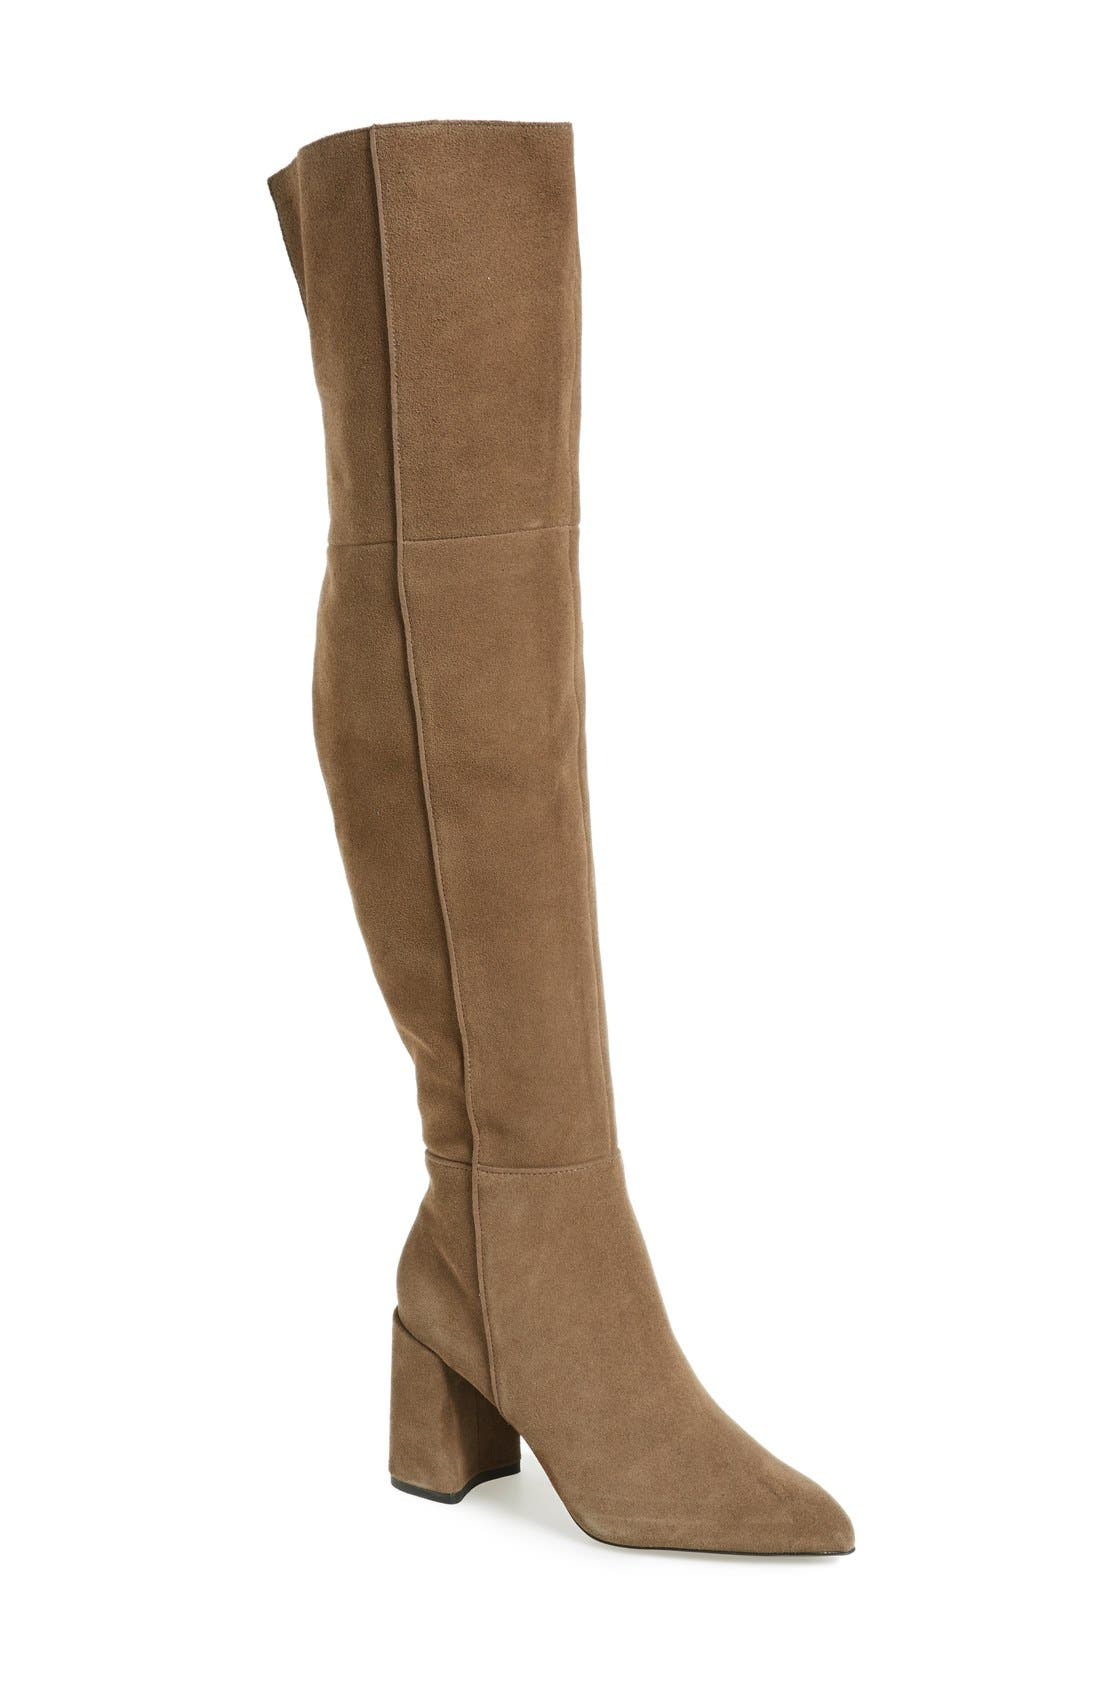 Alternate Image 1 Selected - Topshop Bounty Pointy Toe Over the Knee Boot (Women)